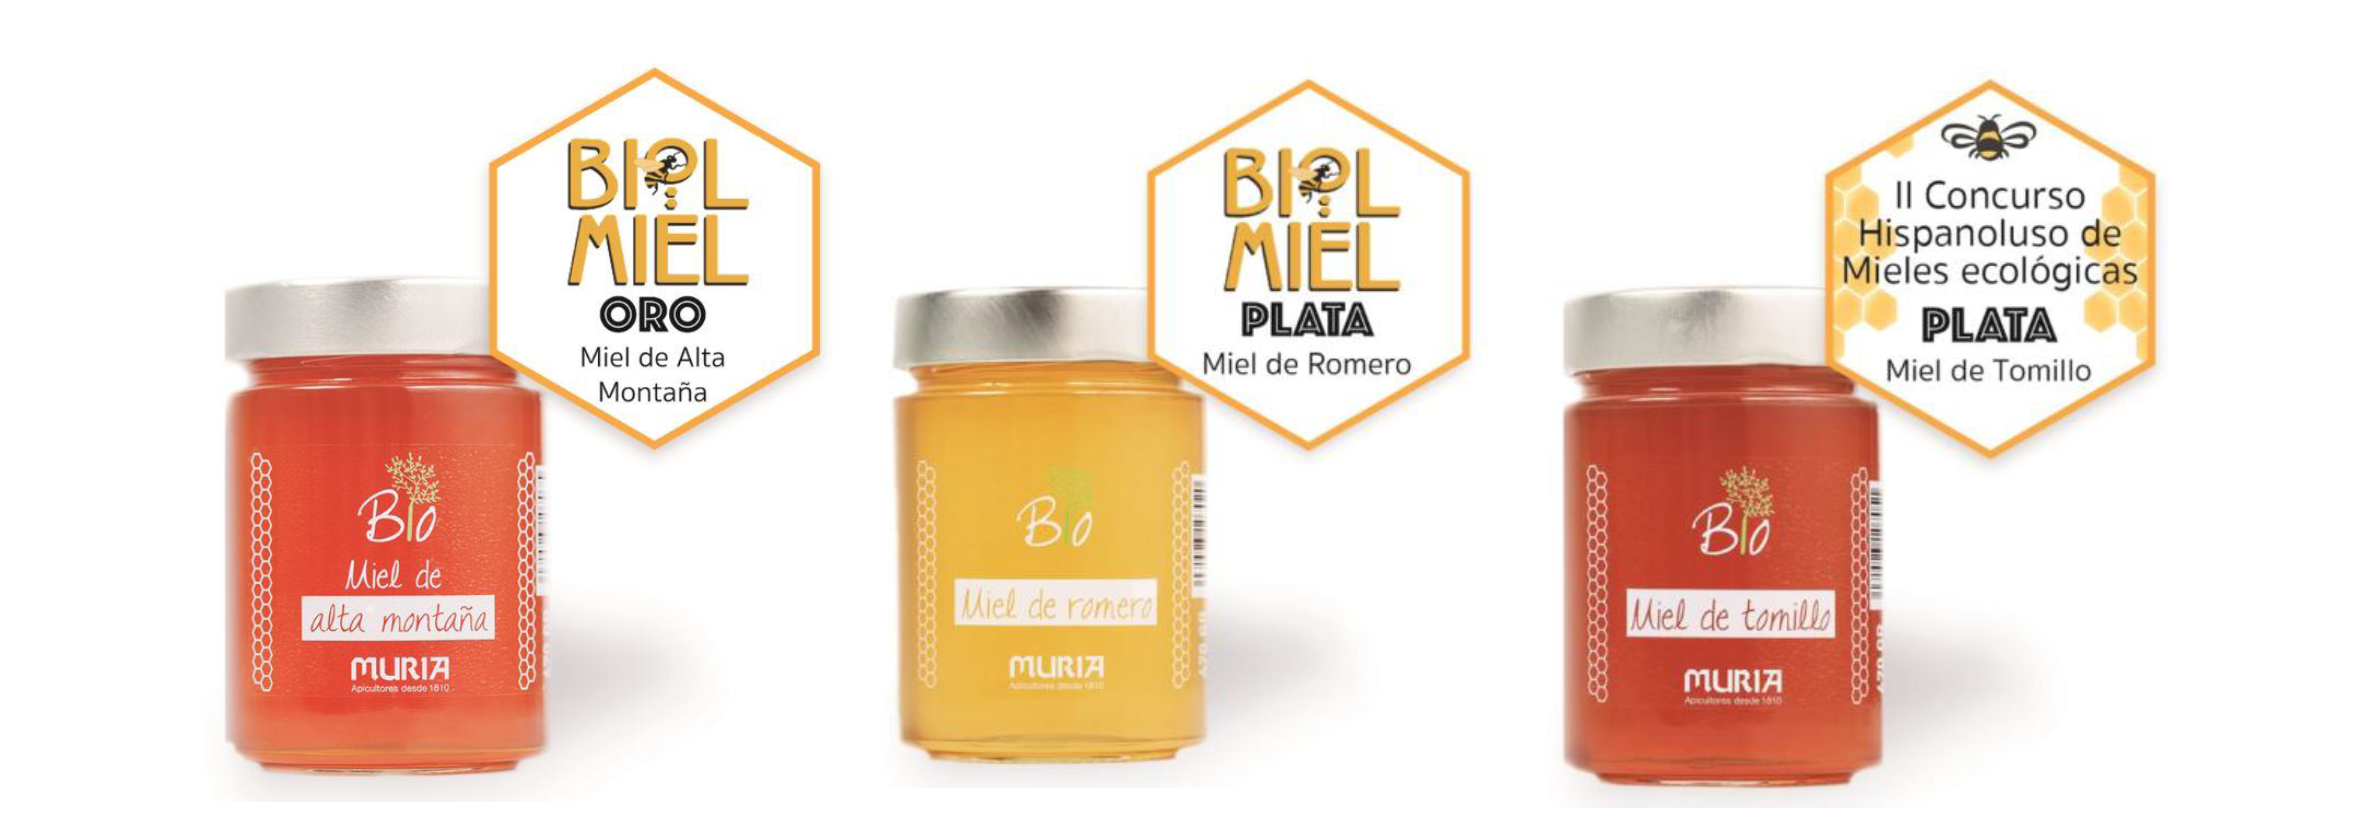 Muria BIO ecological range achieves three new international Awards!